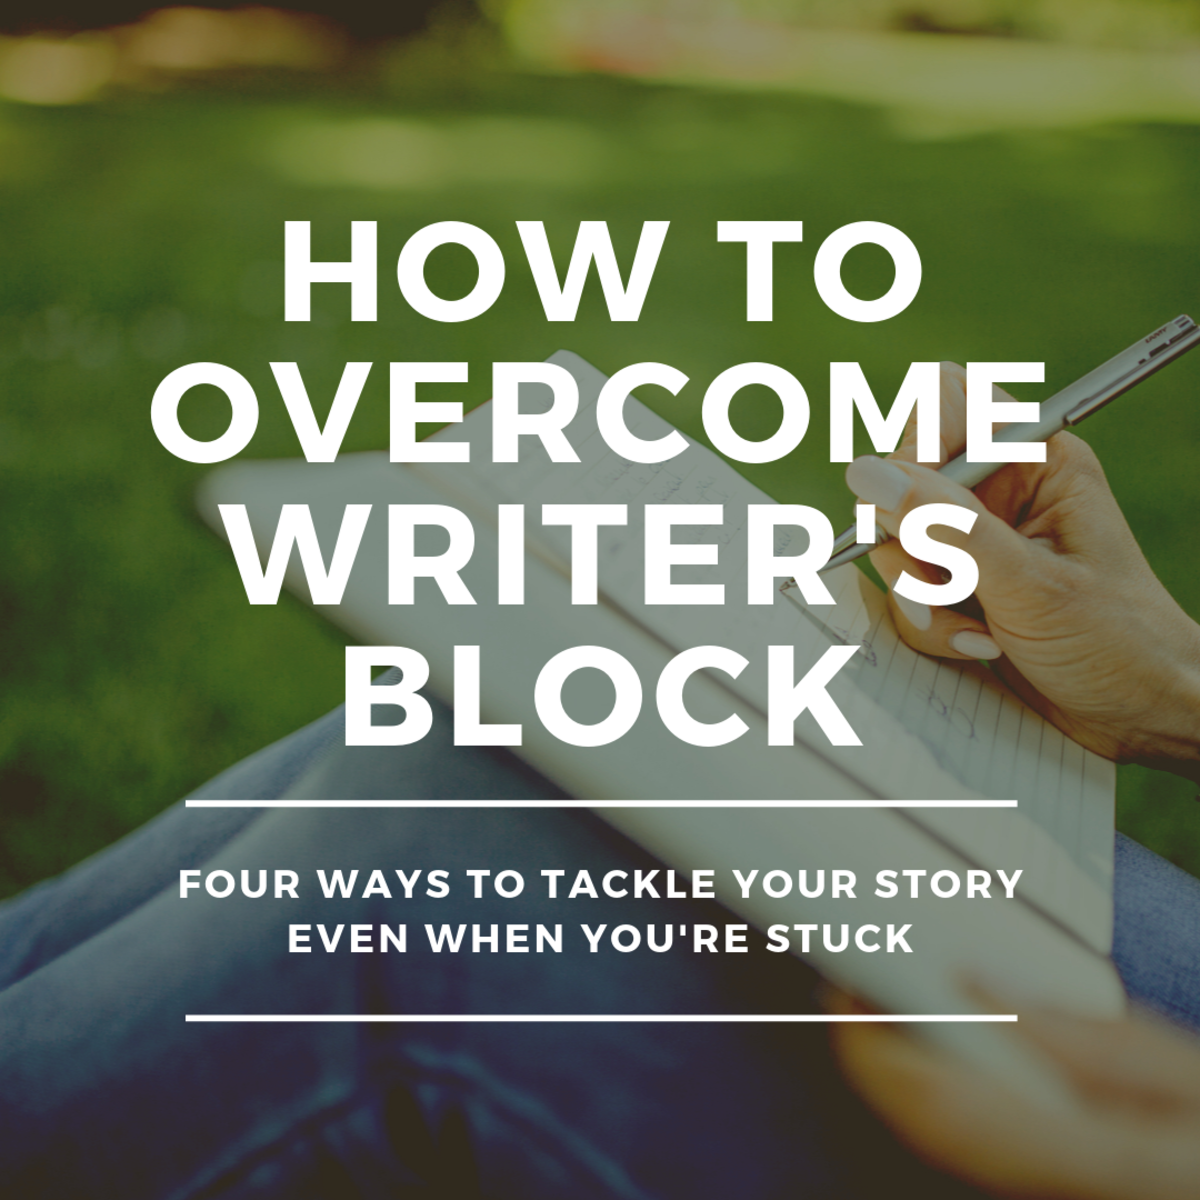 This guide will help any writers who are stuck.